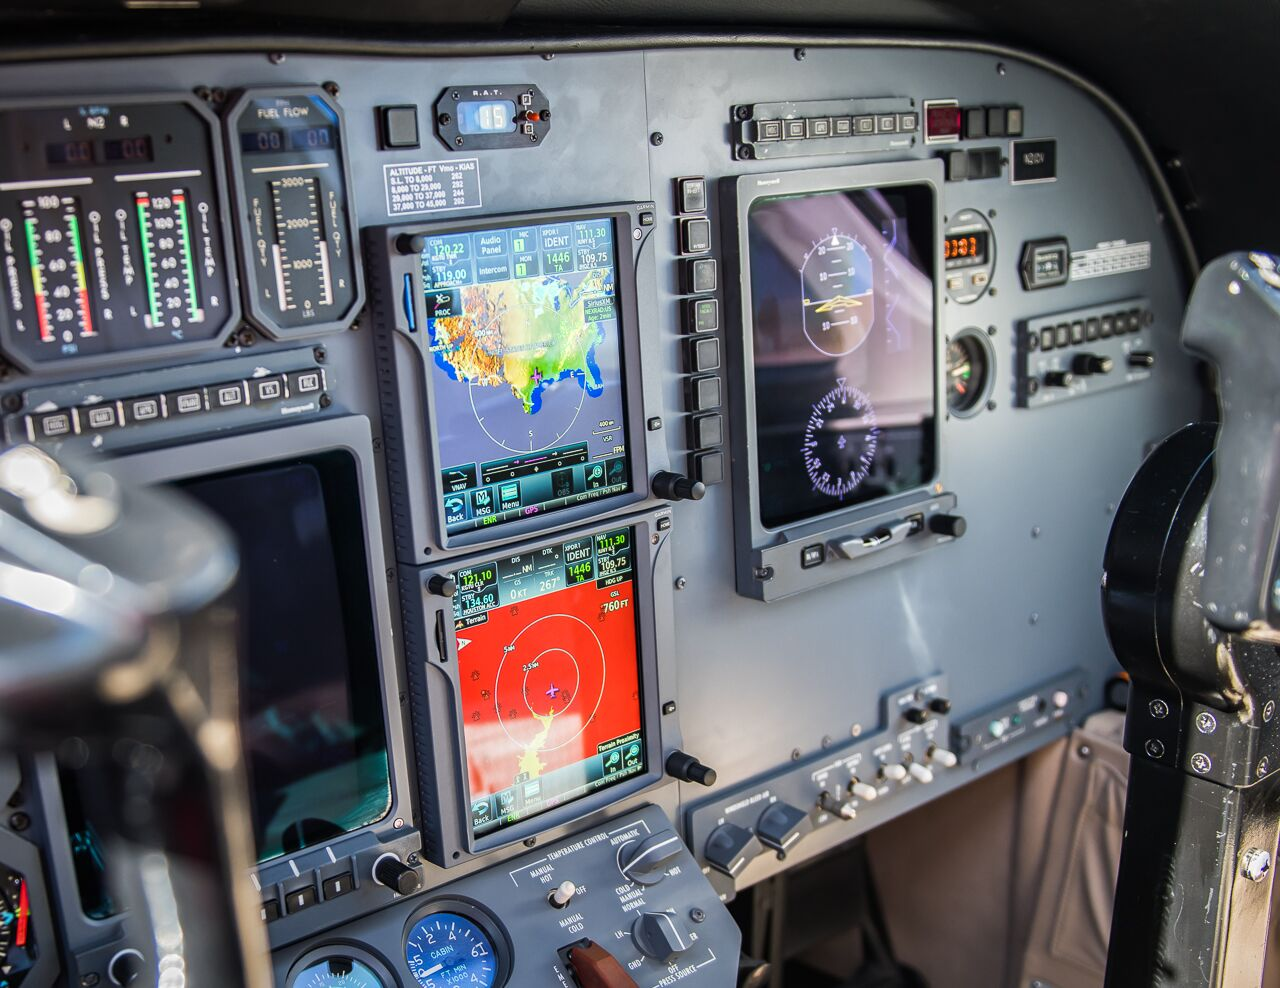 Panel Design & Installation — Avionics Support Specialists